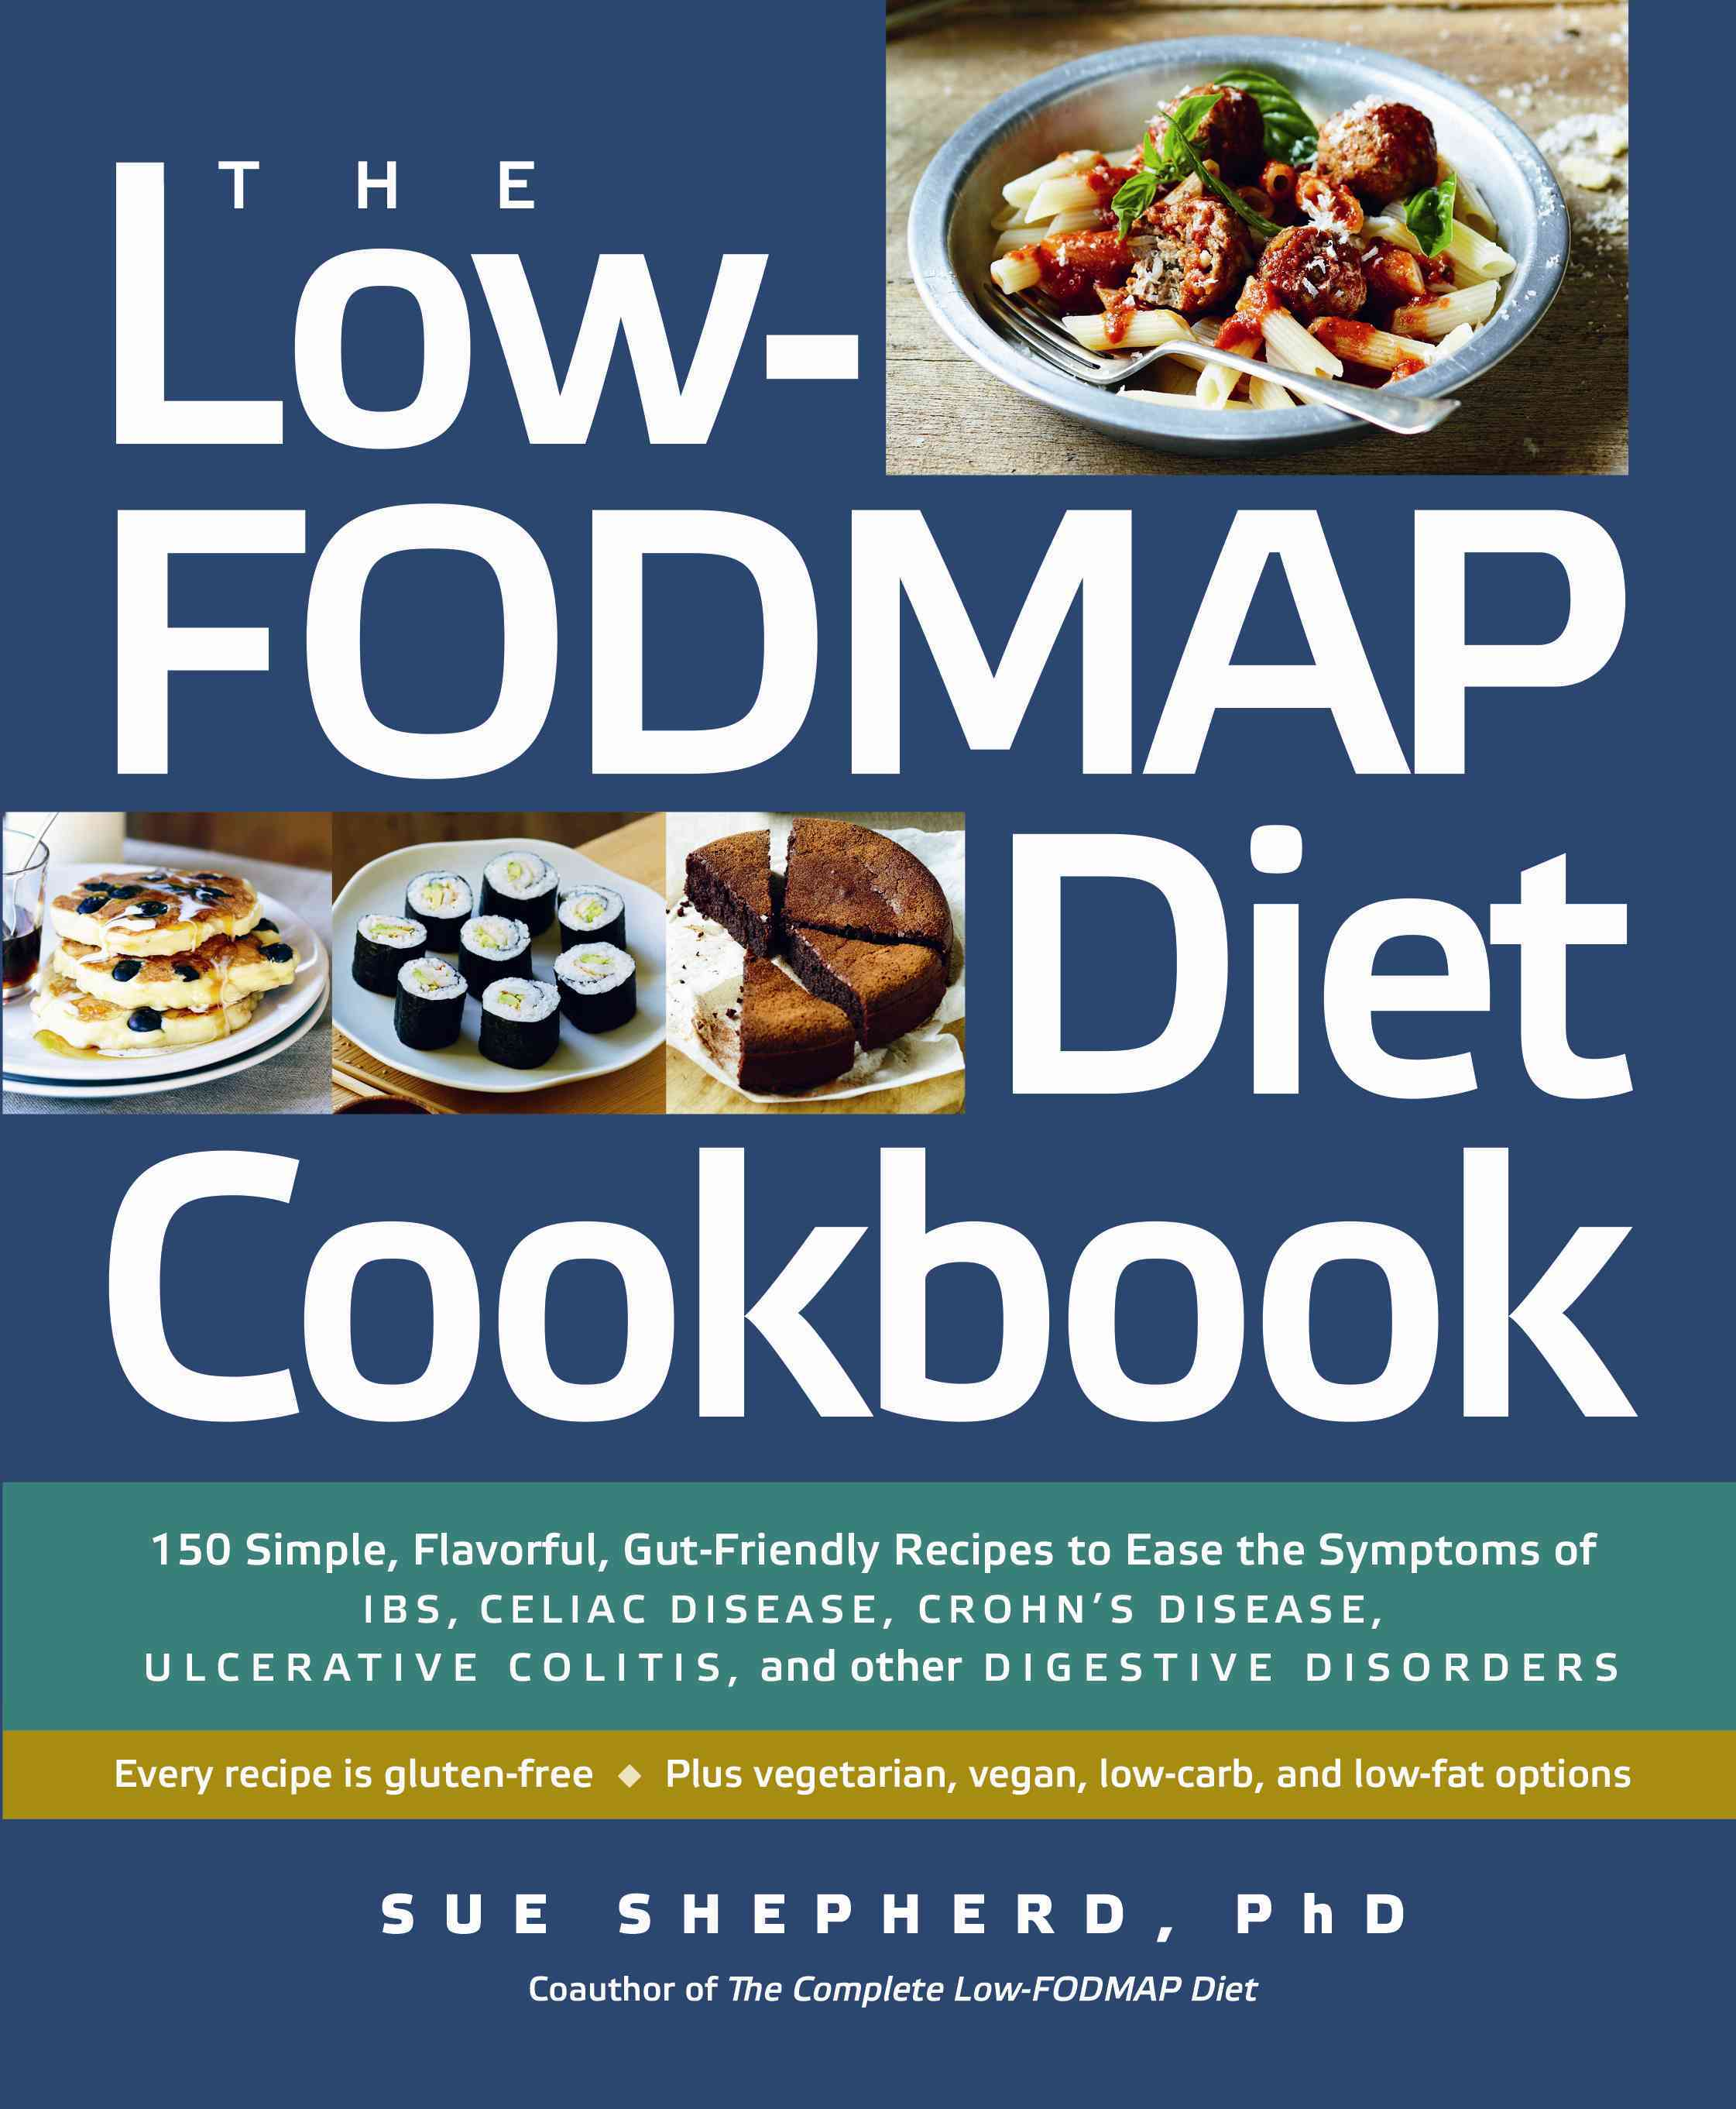 The Low-Fodmap Diet Cookbook: 150 Simple, Flavorful, Gut-Friendly Recipes to Ease the Symptoms of IBS, Celiac Dis... (Paperback)